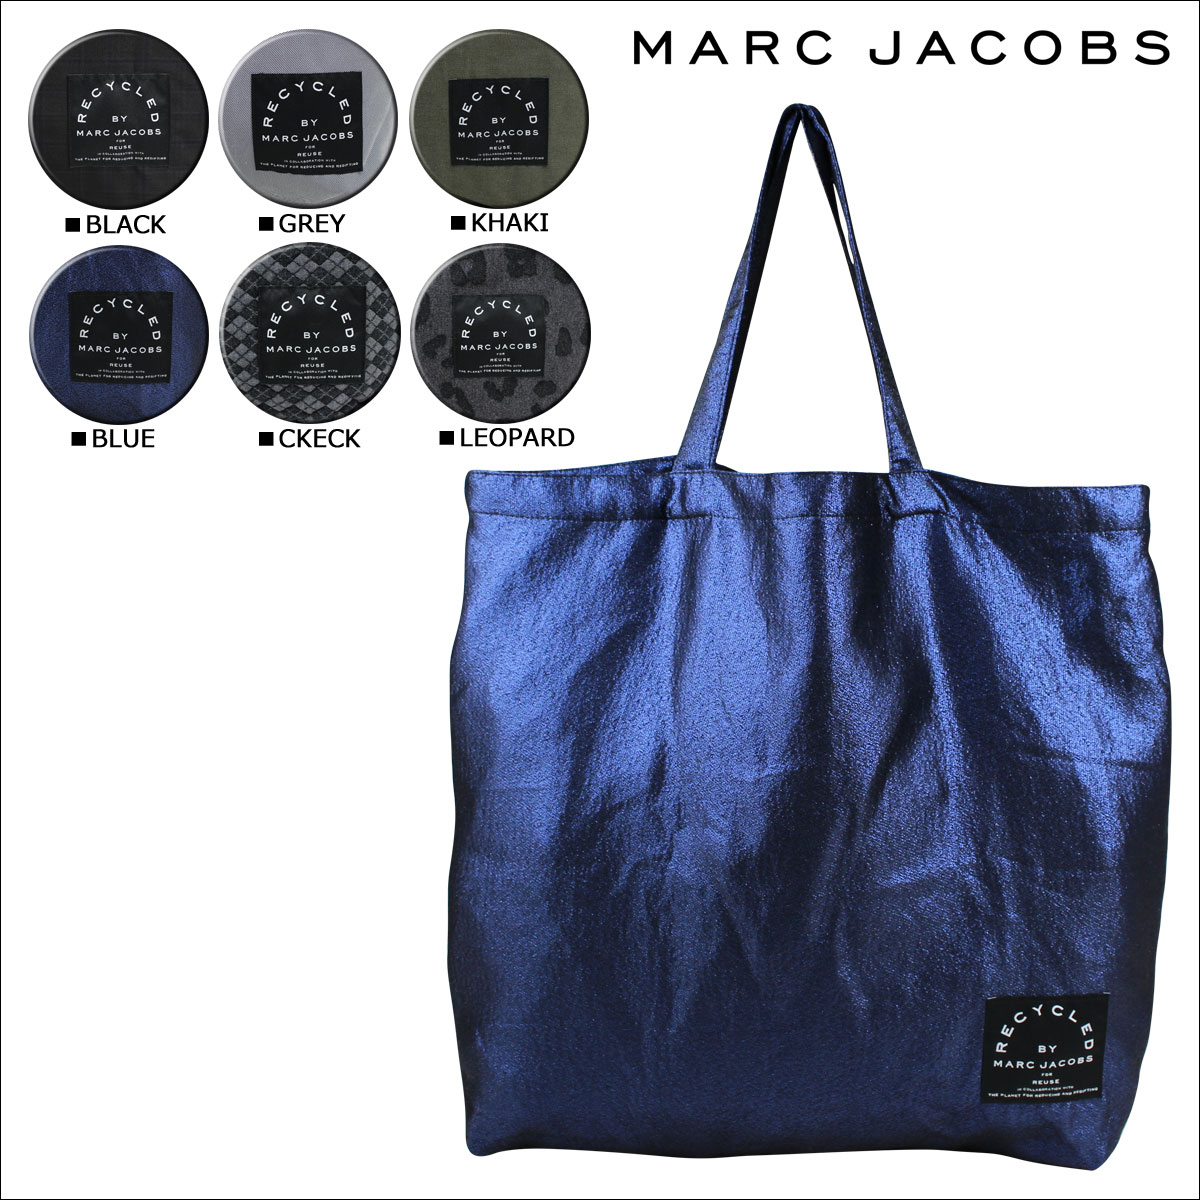 Allsports Marc By Jacobs Bag Tote S0000280 Recycle Men Women 8 2 New In Stock Rakuten Global Market